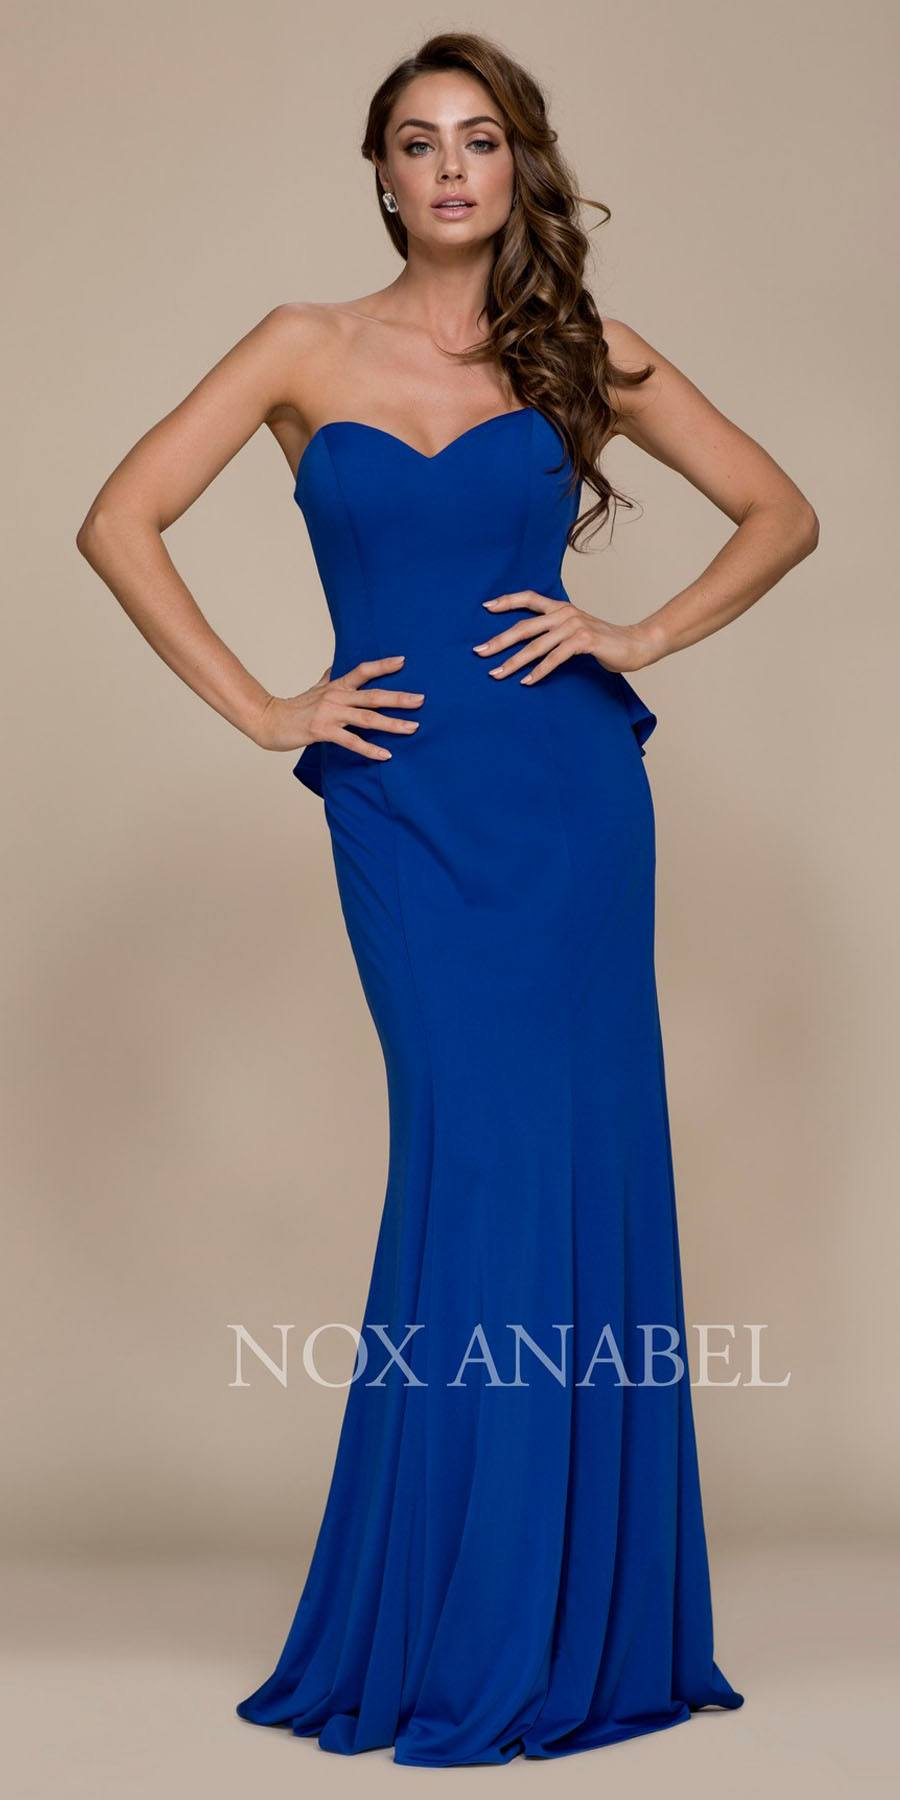 fbcd9c84e80f Strapless Long Prom Dress Cut Out Back with Ruffled Bustle Royal Blue. Tap  to expand